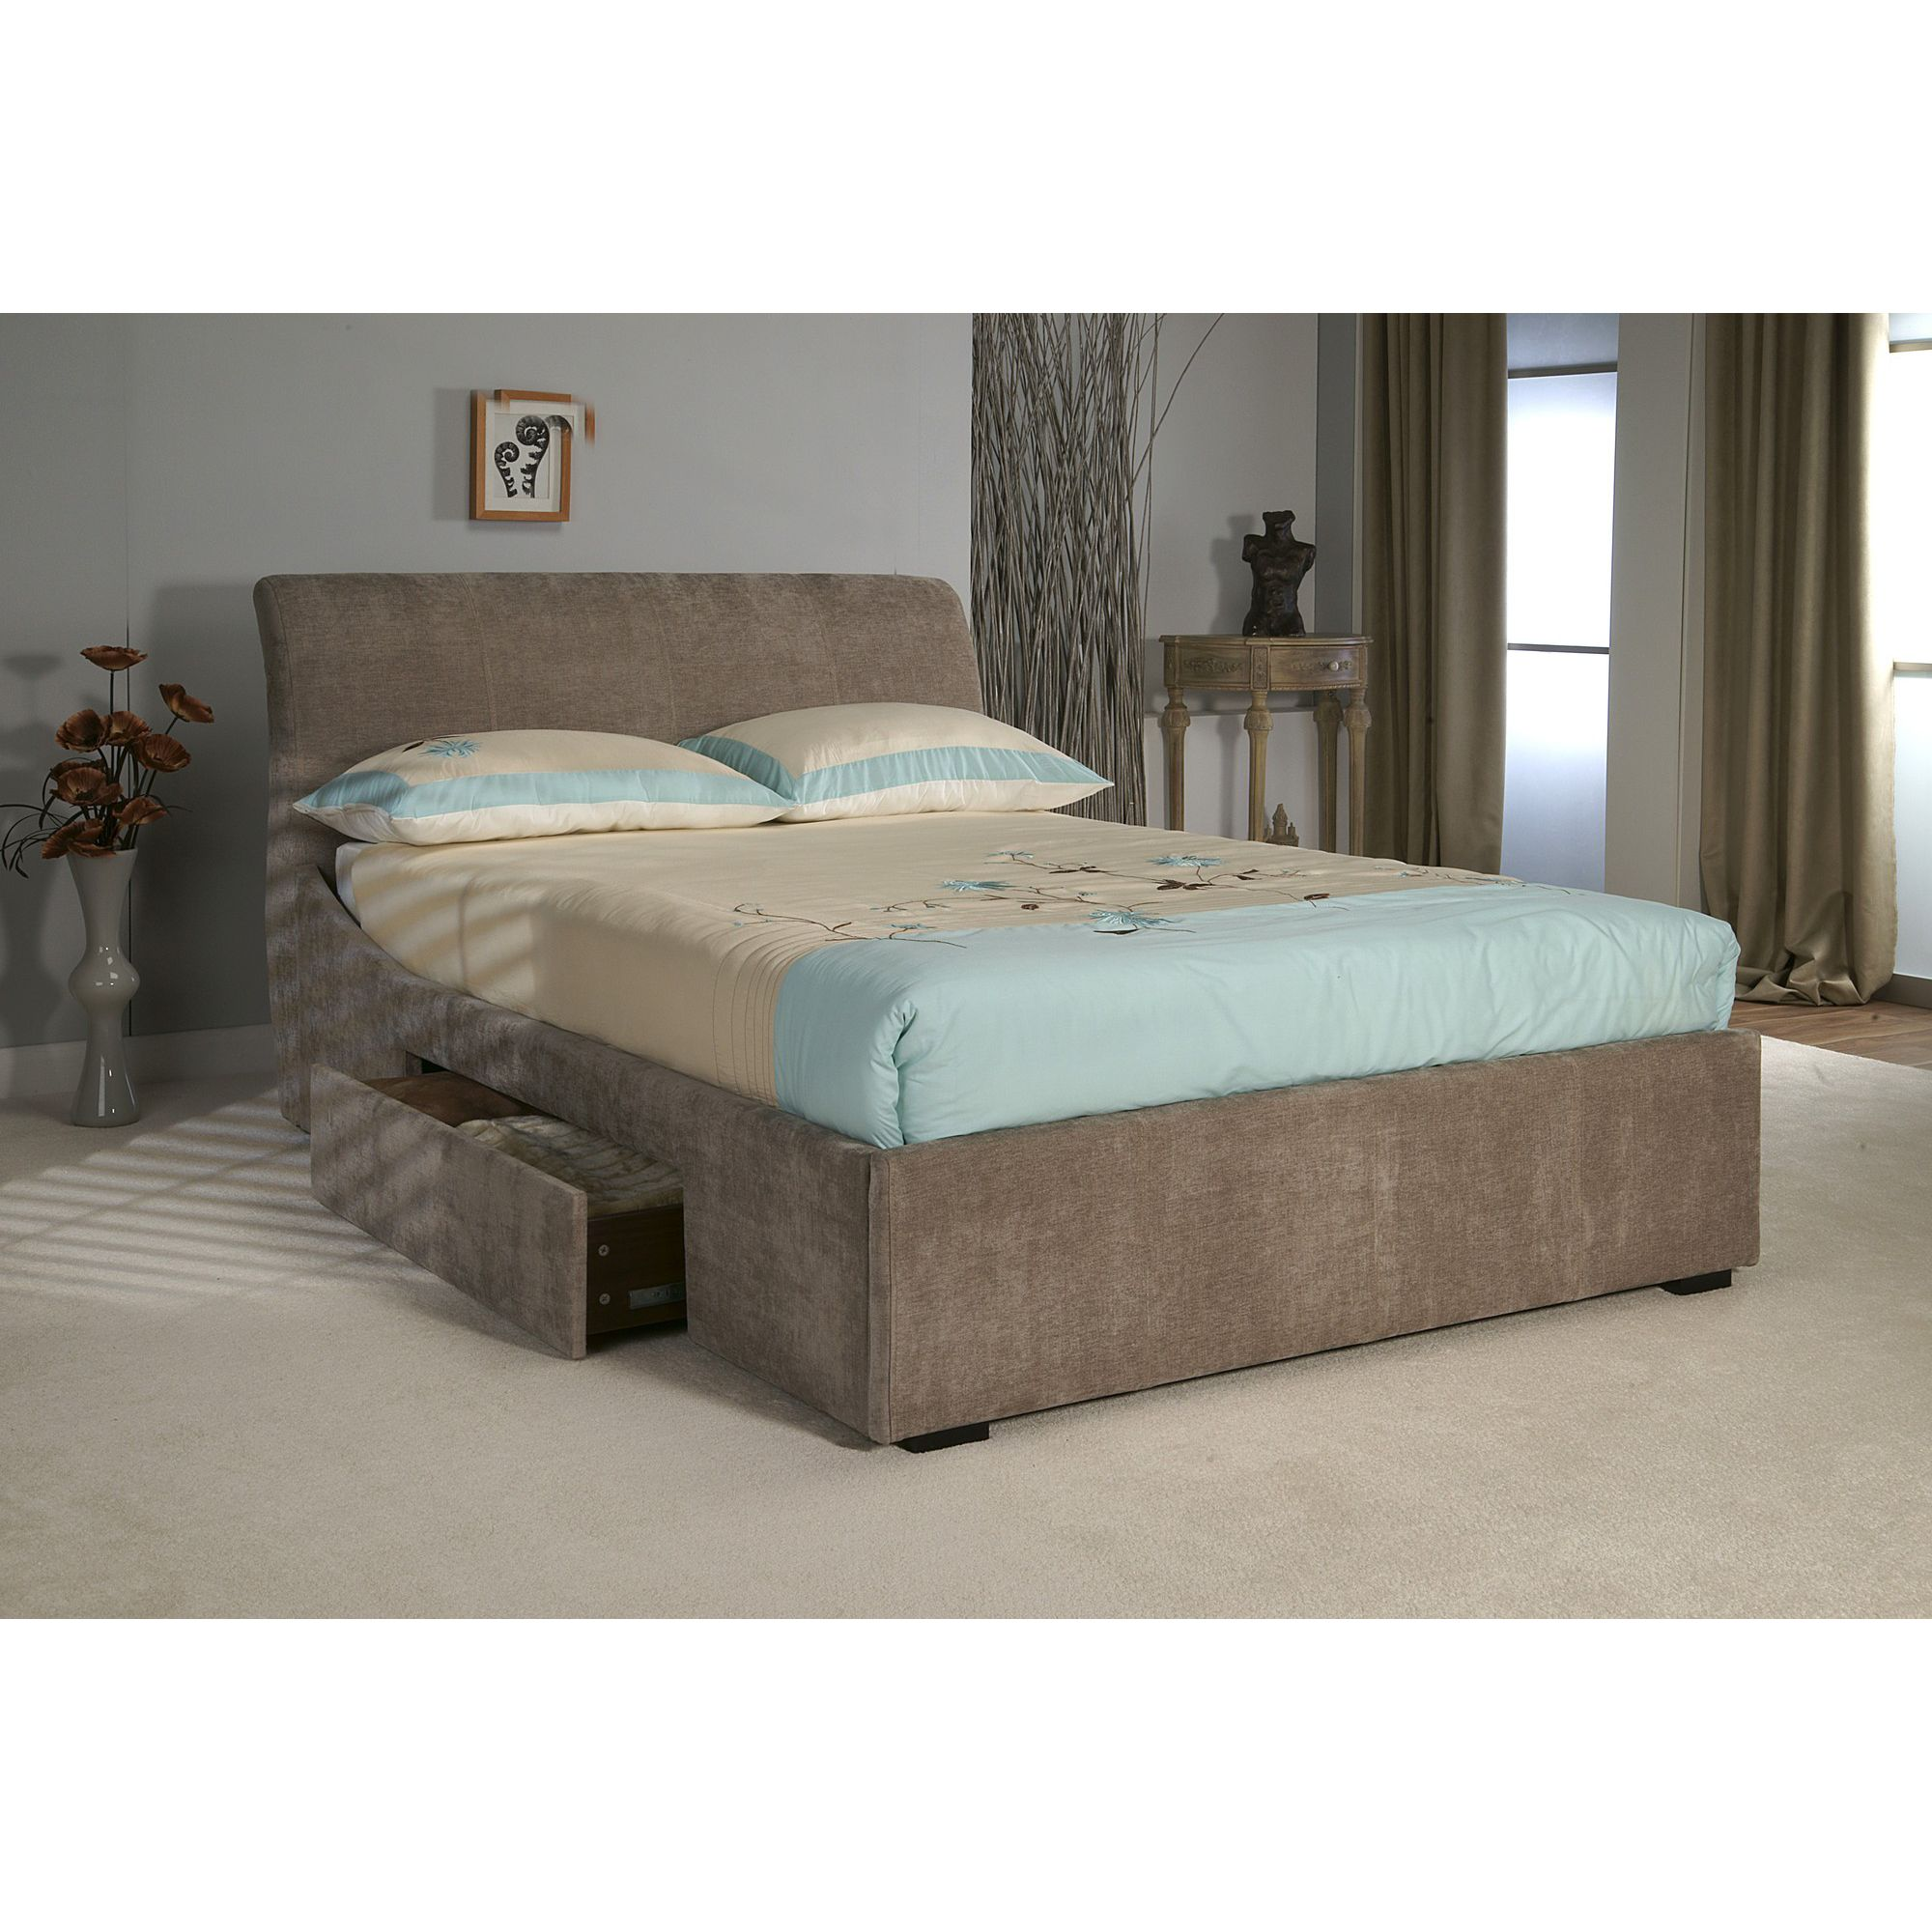 Limelight Oberon Bedstead with Storage - Super King at Tesco Direct